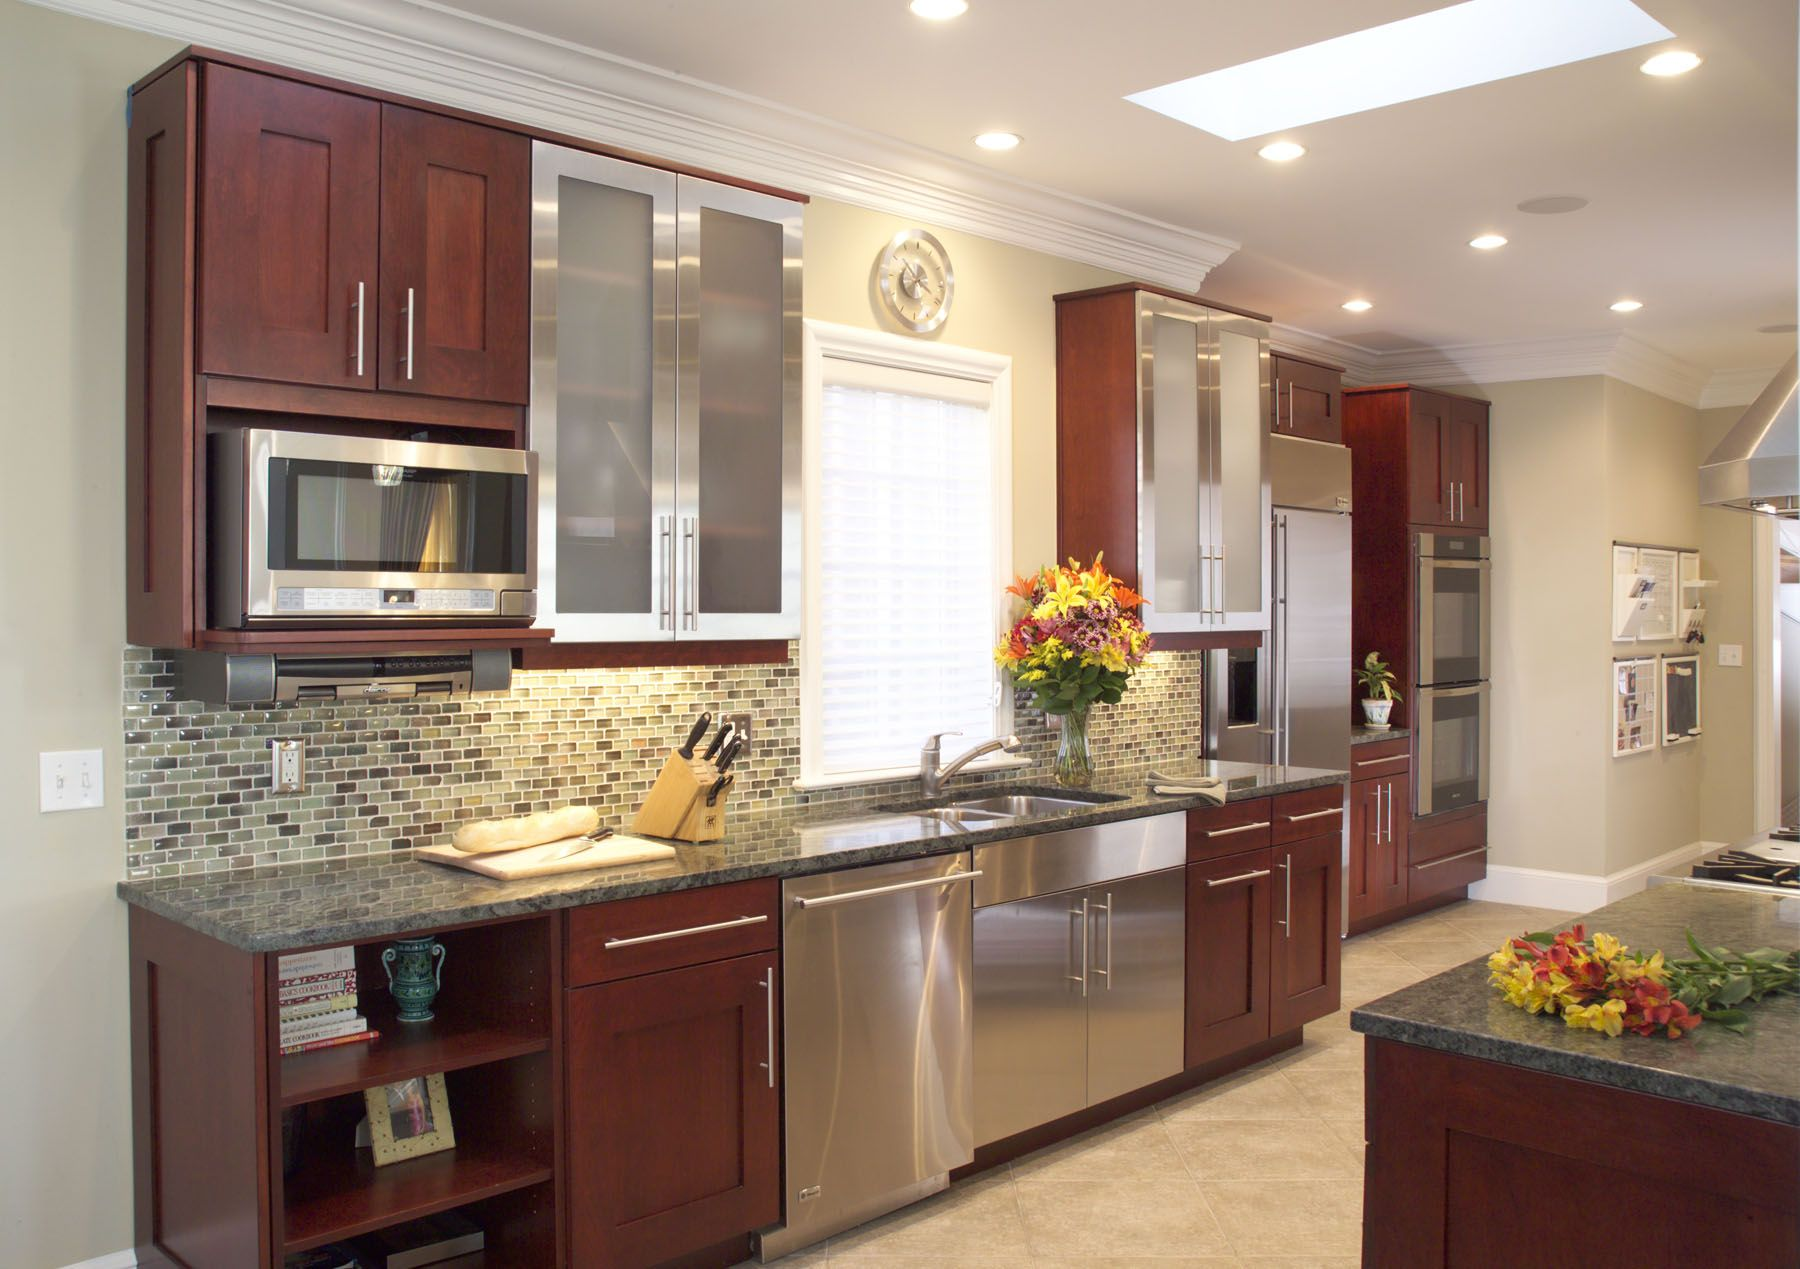 Selecting Island or Peninsulas For Your Kitchens